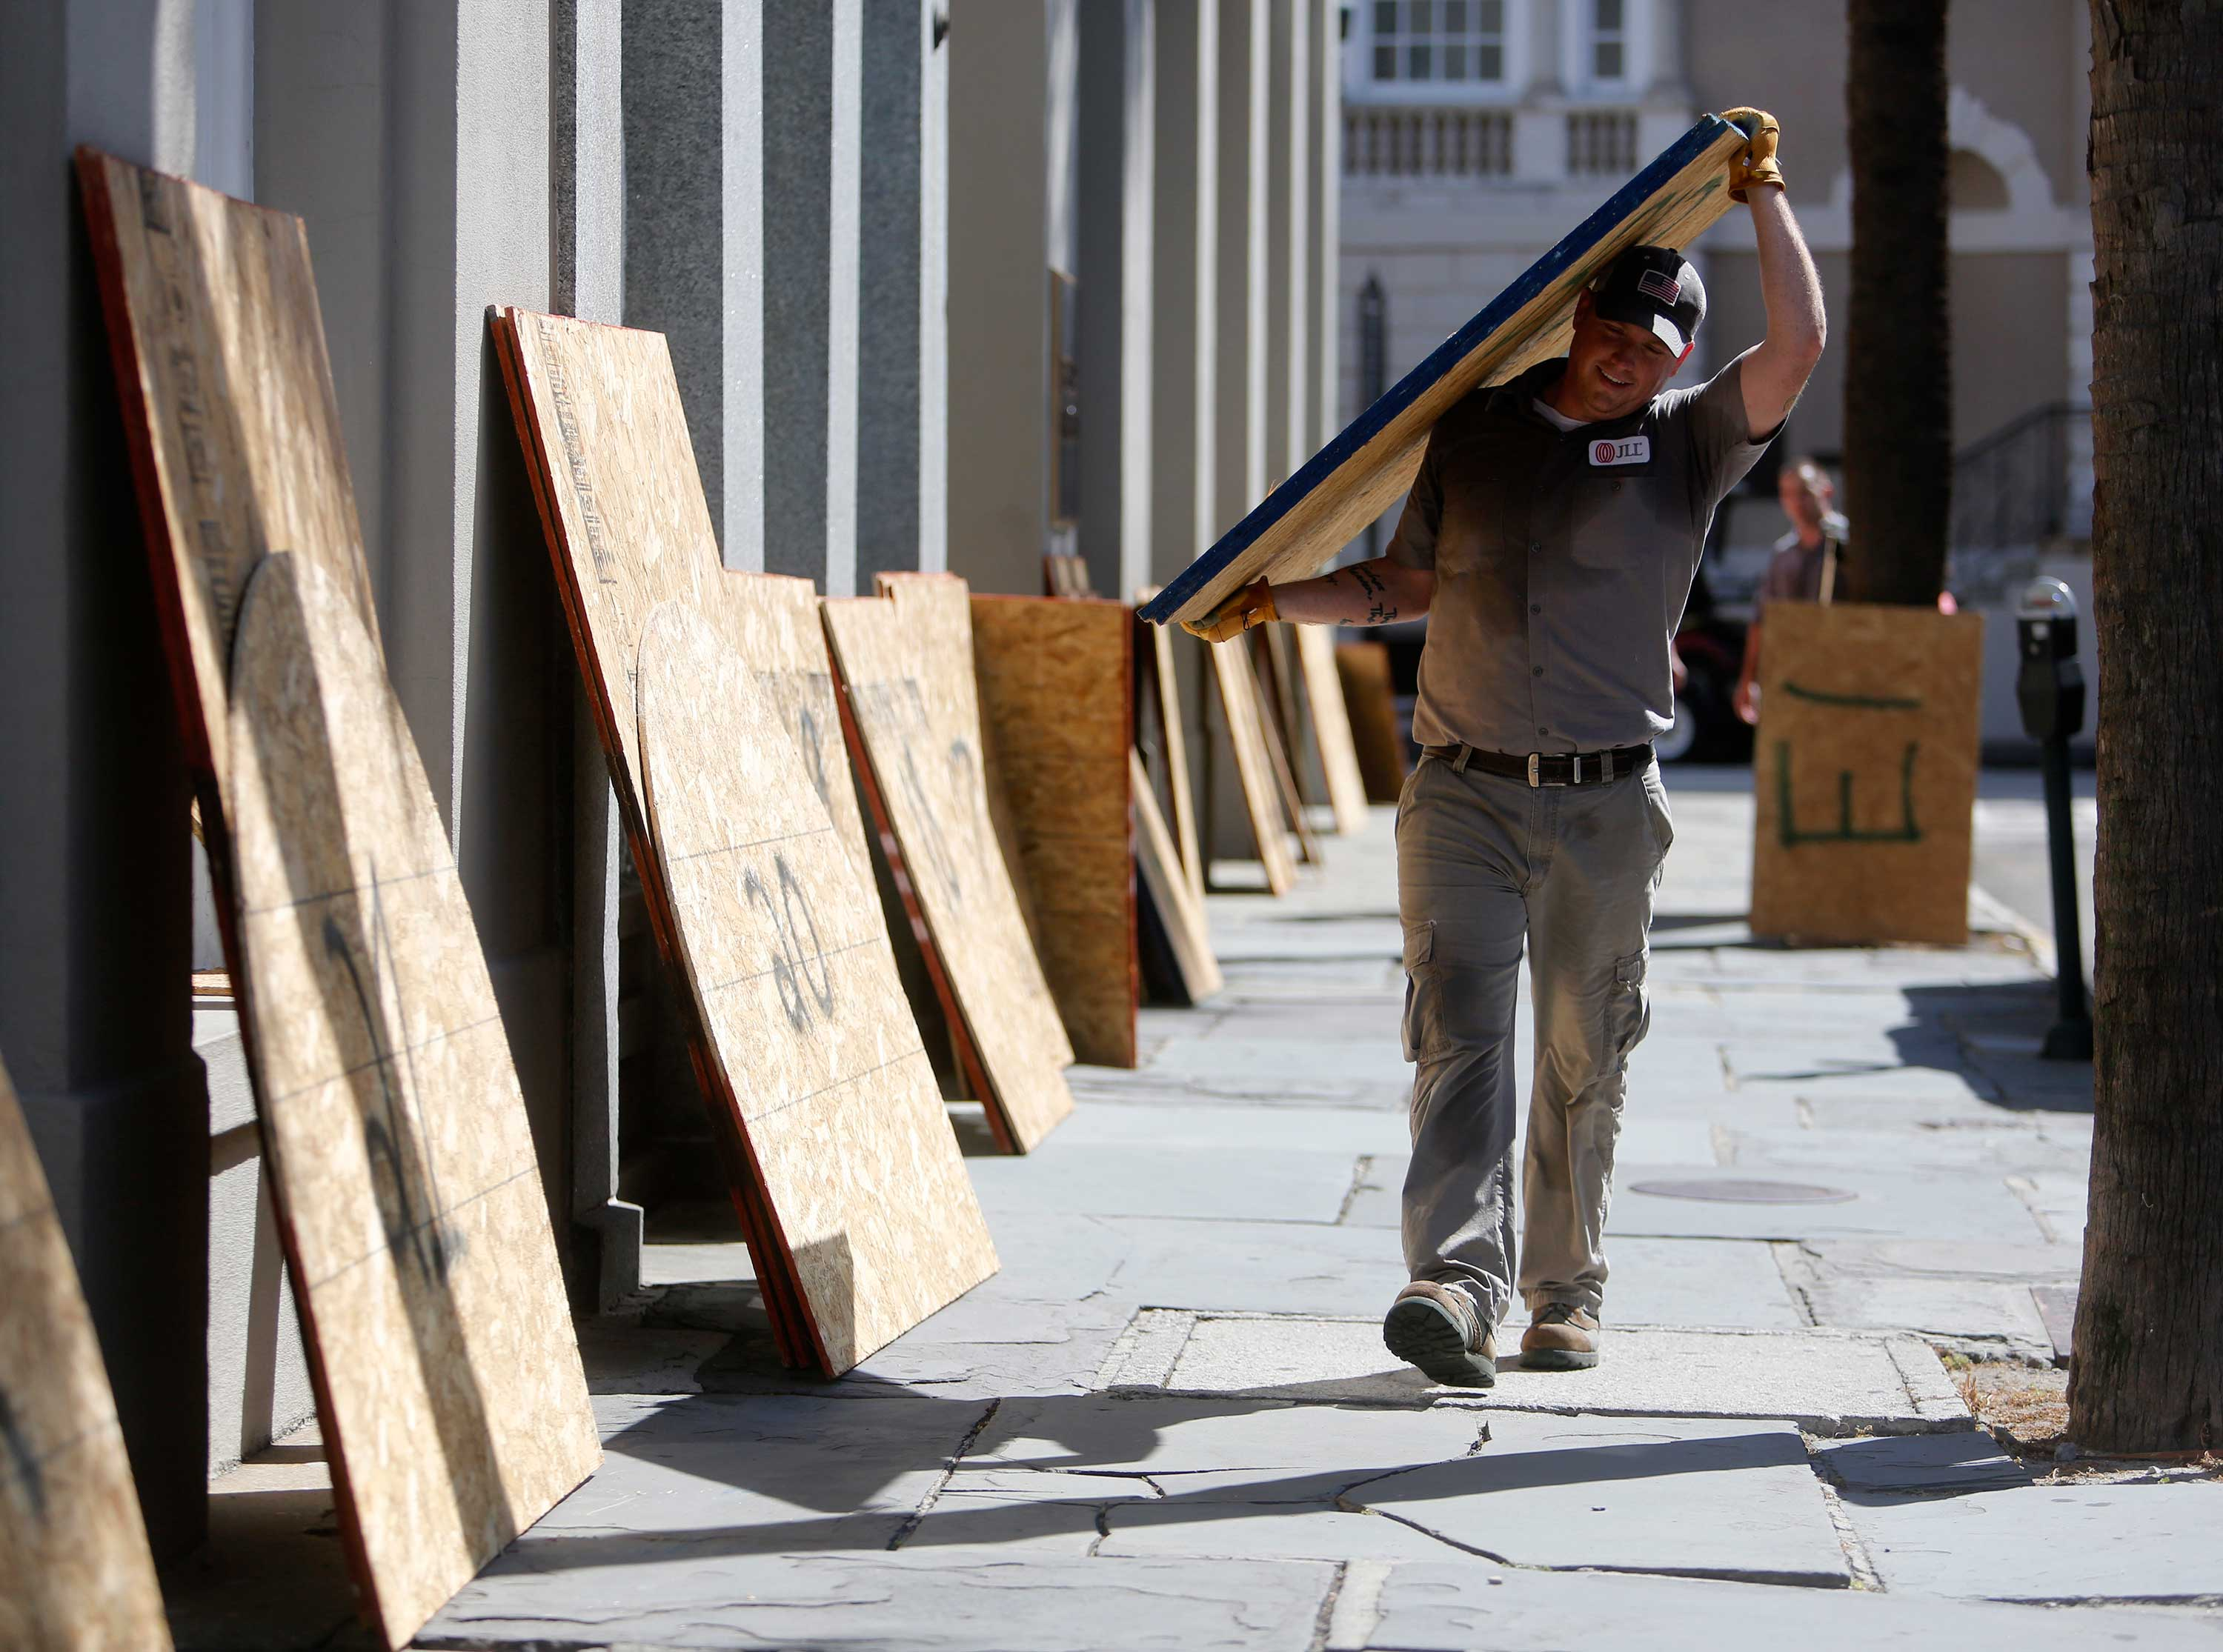 "<div class=""meta image-caption""><div class=""origin-logo origin-image none""><span>none</span></div><span class=""caption-text"">Preston Guiher carries a sheet of plywood as he prepares to board up a Wells Fargo bank in preparation for Hurricane Florence in downtown Charleston, S.C., Tuesday, Sept. 11, 2018. (Mic Smith/AP Photo)</span></div>"